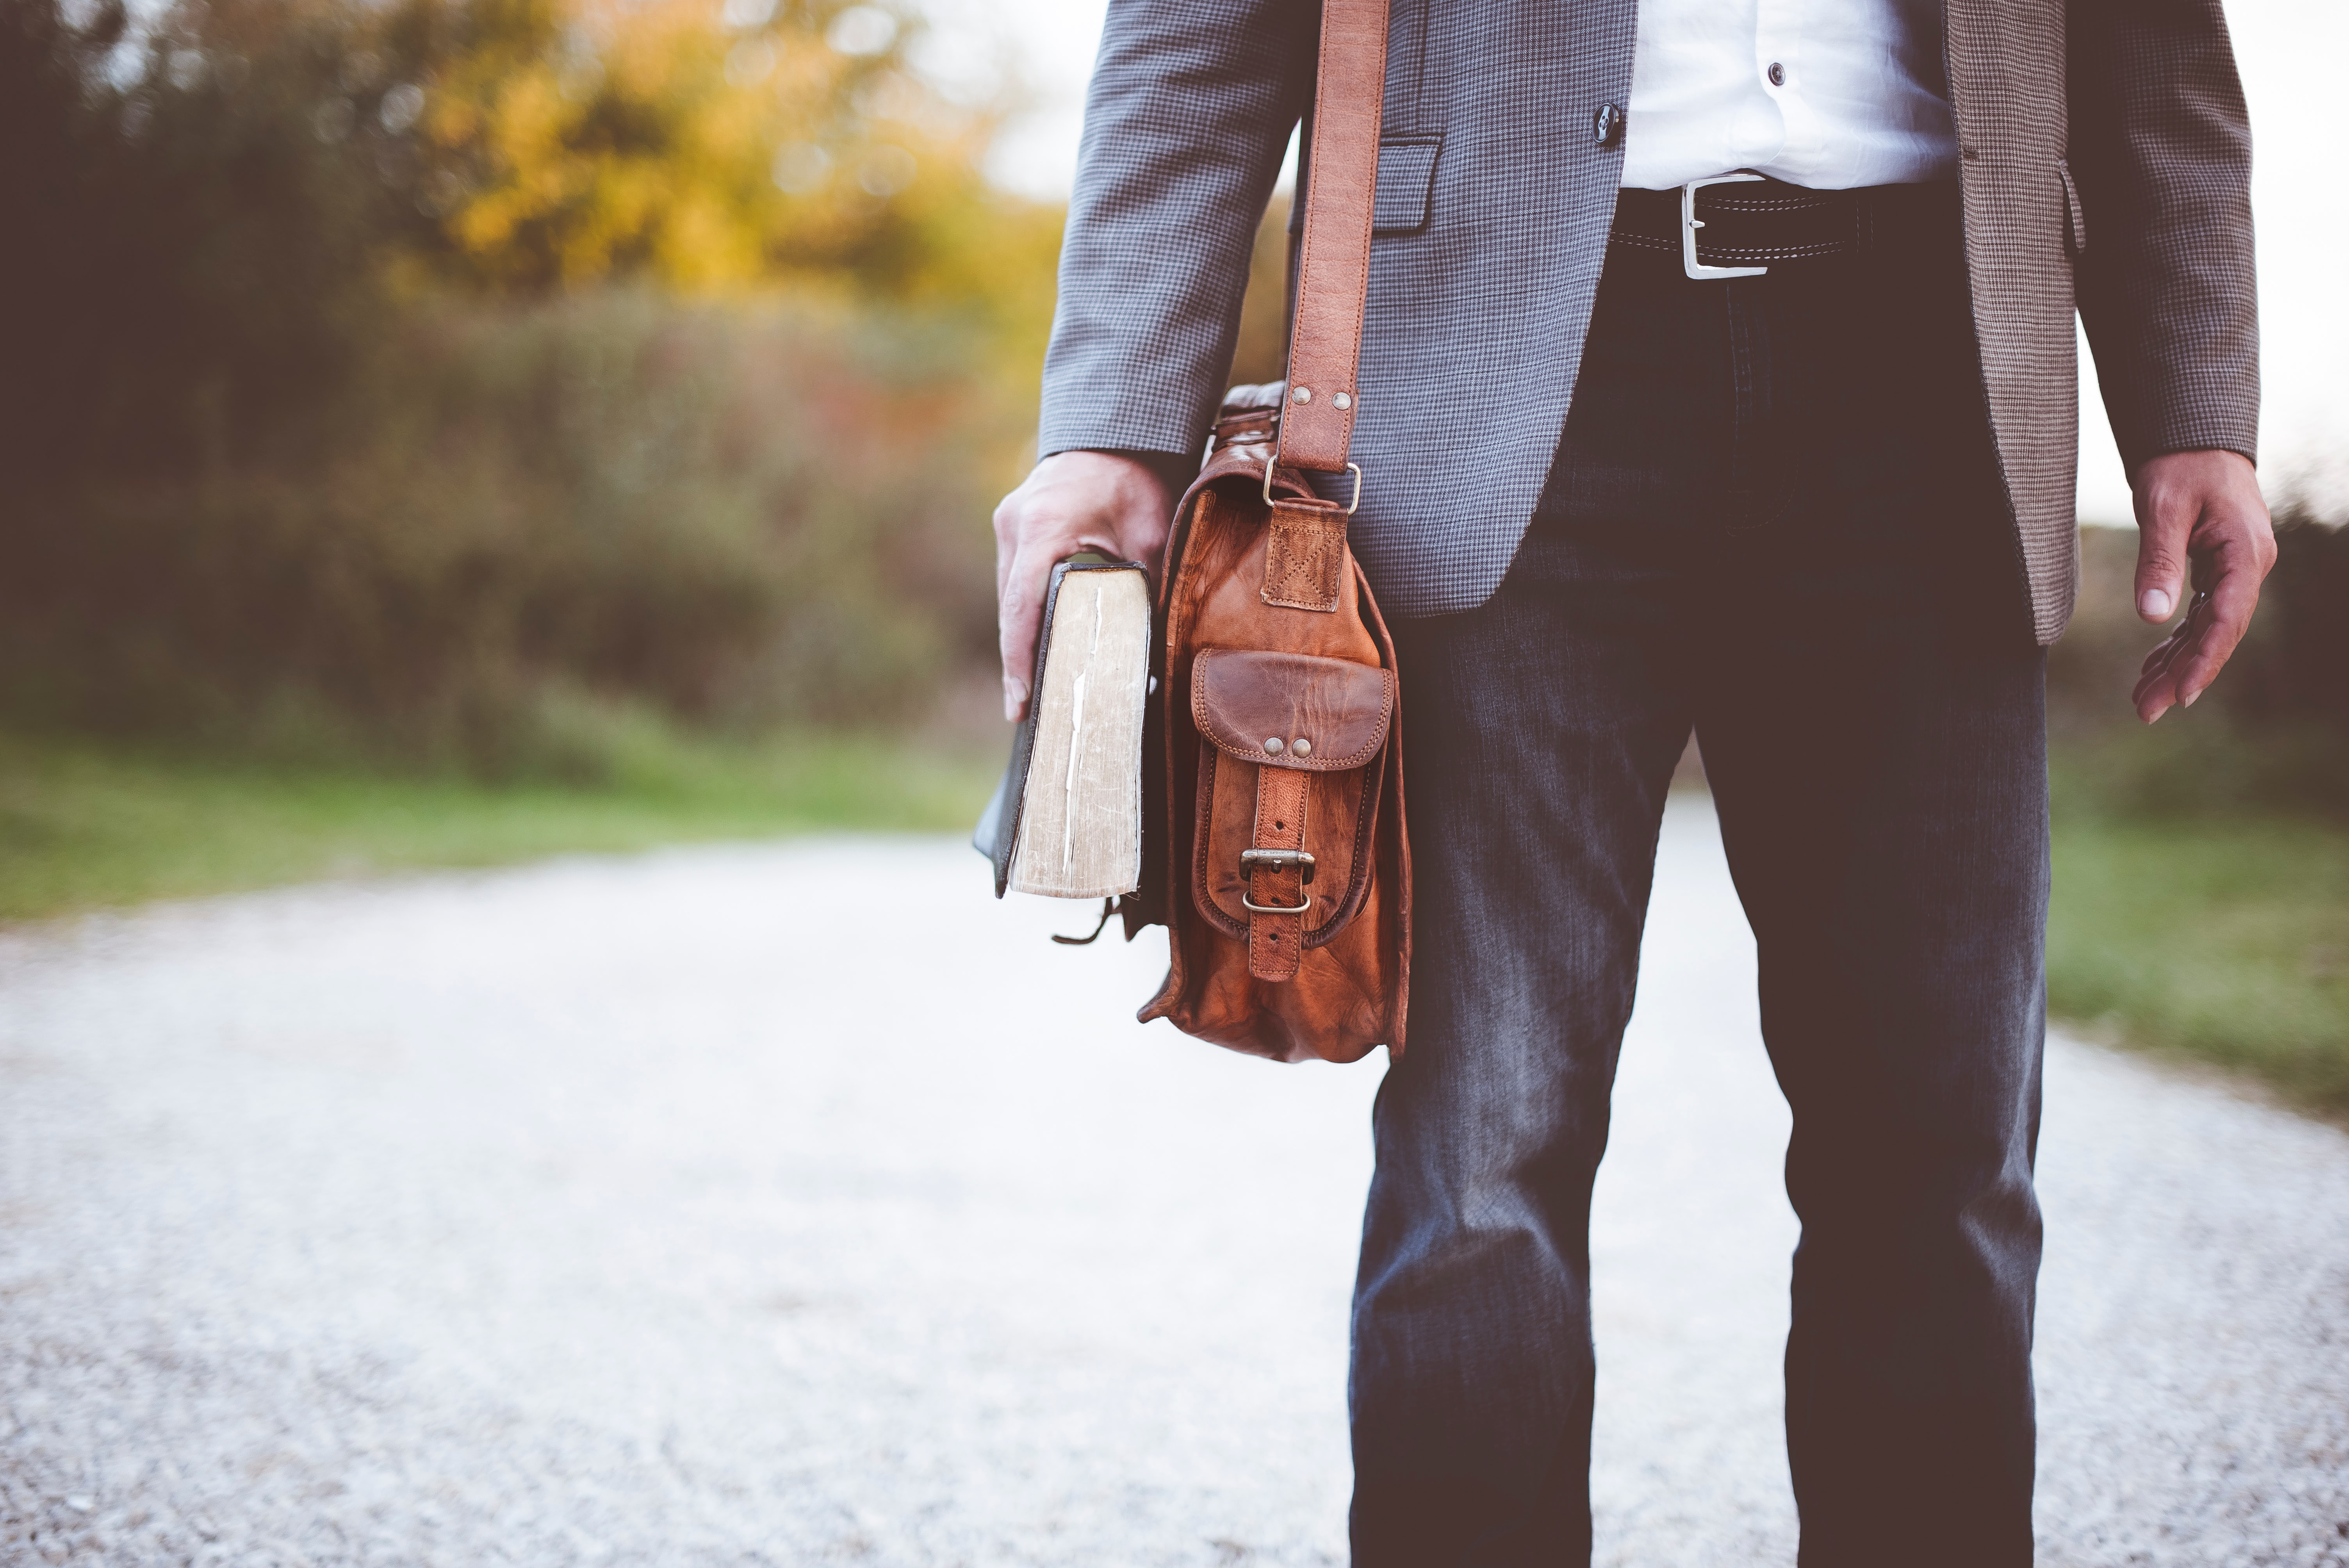 Man with leather bag and book; image by Ben White, via Unsplash.com.